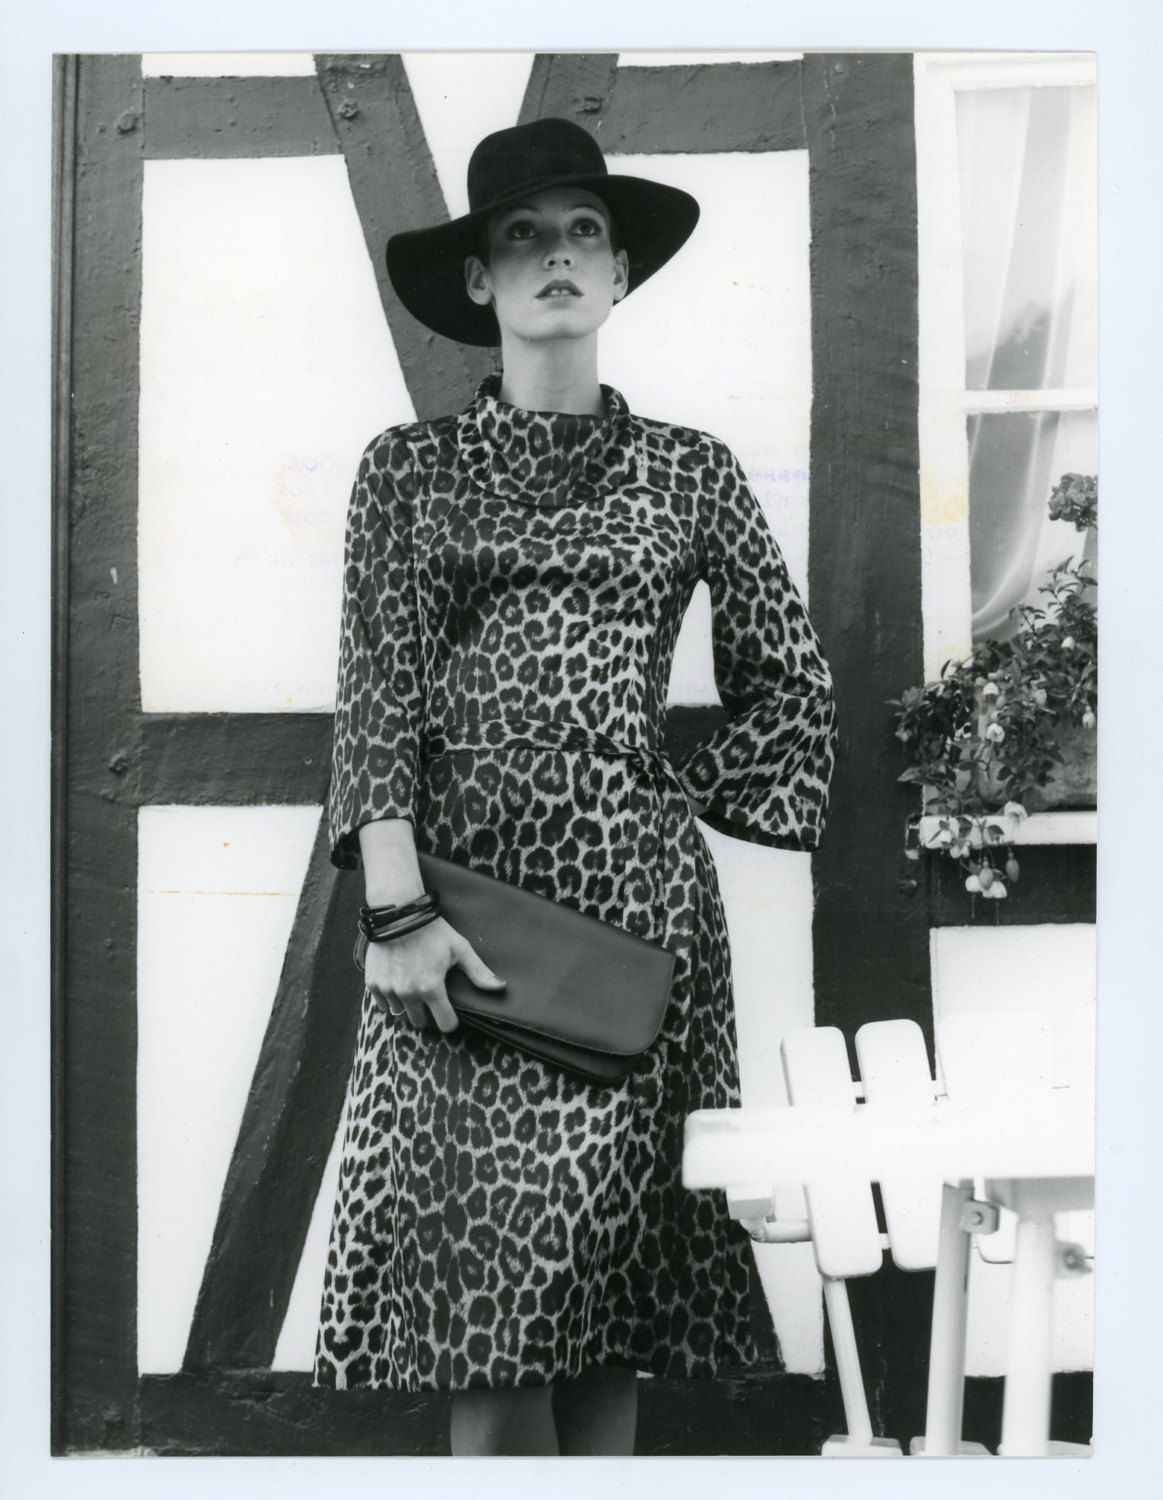 0fd3055d Vintage fashion photo - 1970s - womens fashion model - leopard print dress  - black and white photo by GRAINSofBrussels on Etsy